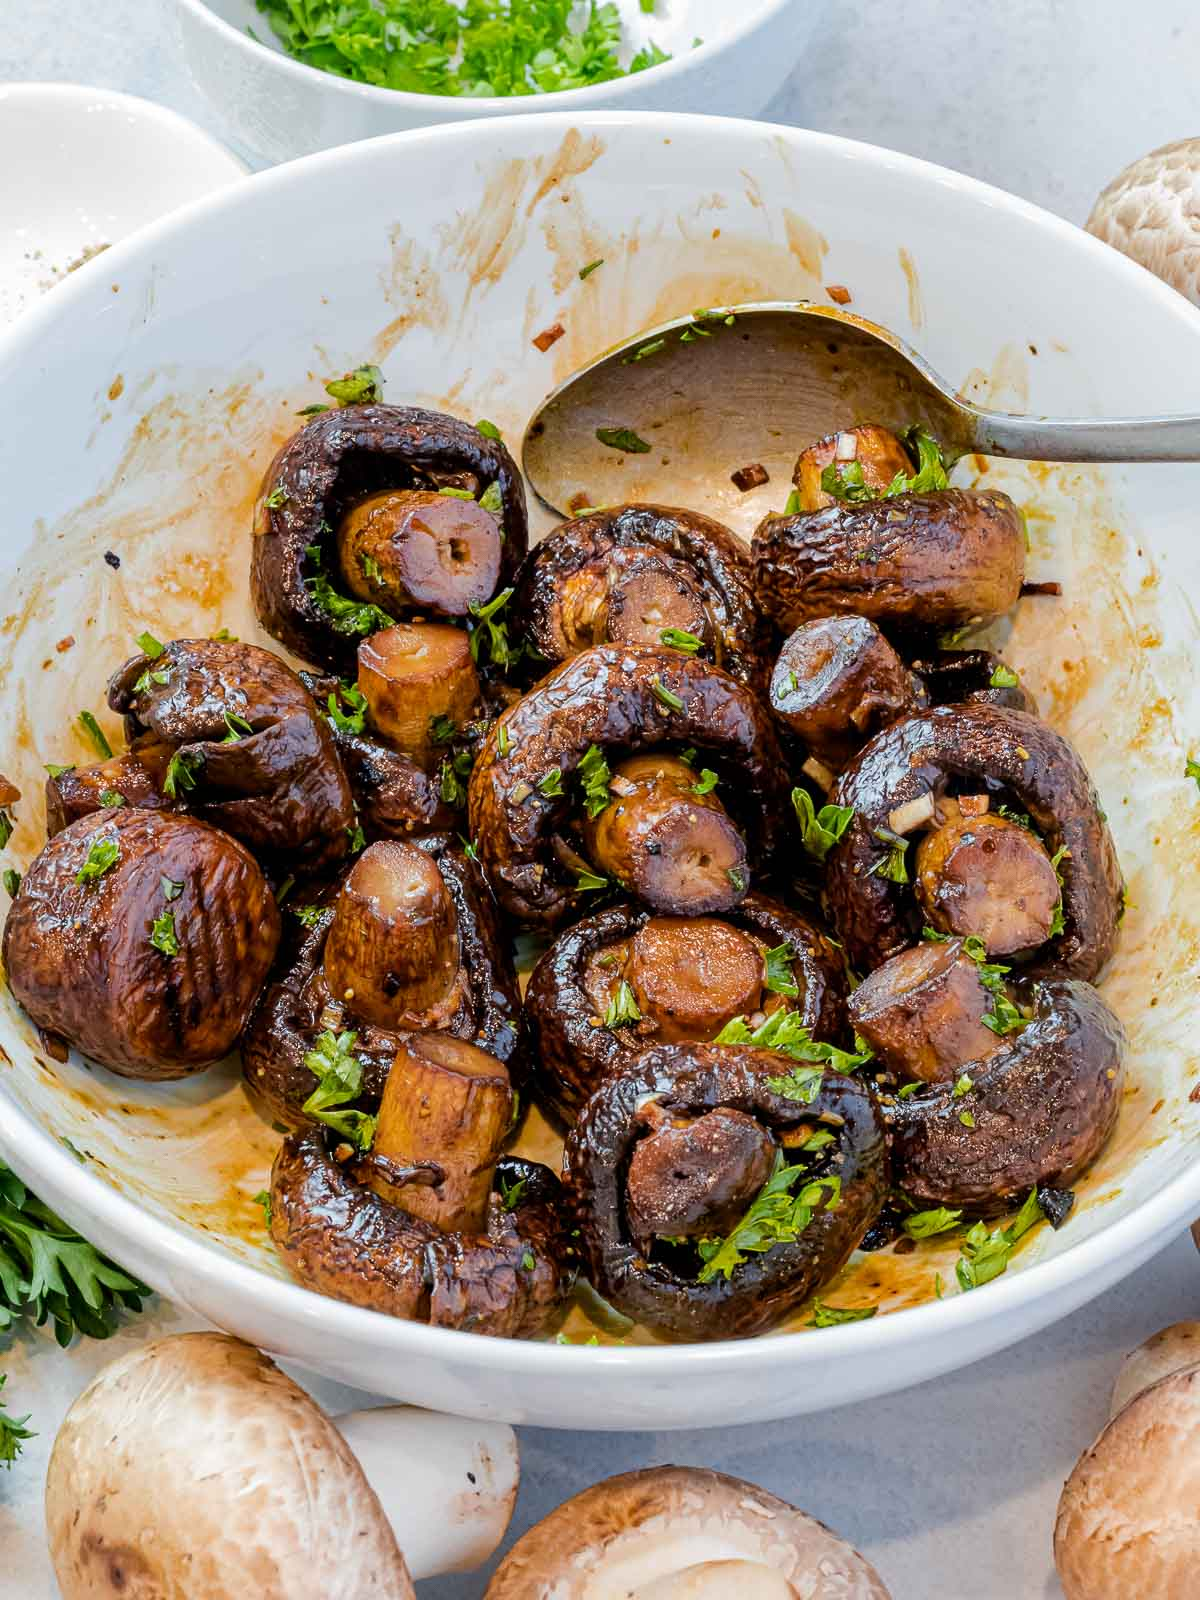 oven roasted mushrooms in a white bowl with a spoon surrounded by raw mushrooms